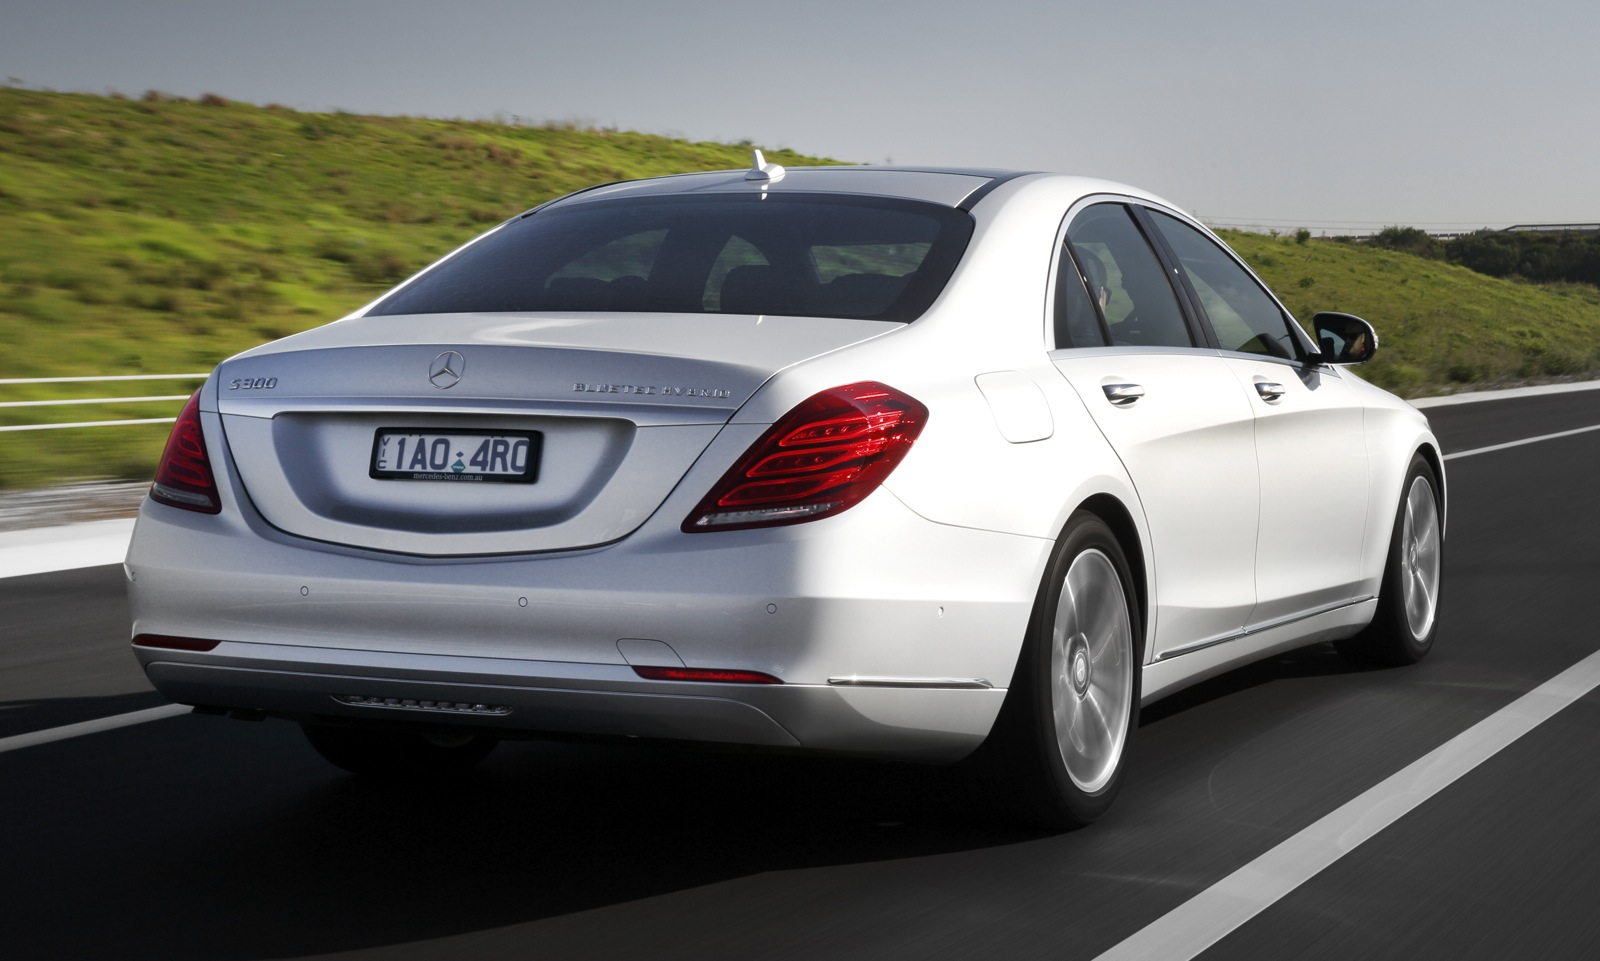 Mercedes benz s class range expands s300 bluetec hybrid for Hybrid mercedes benz